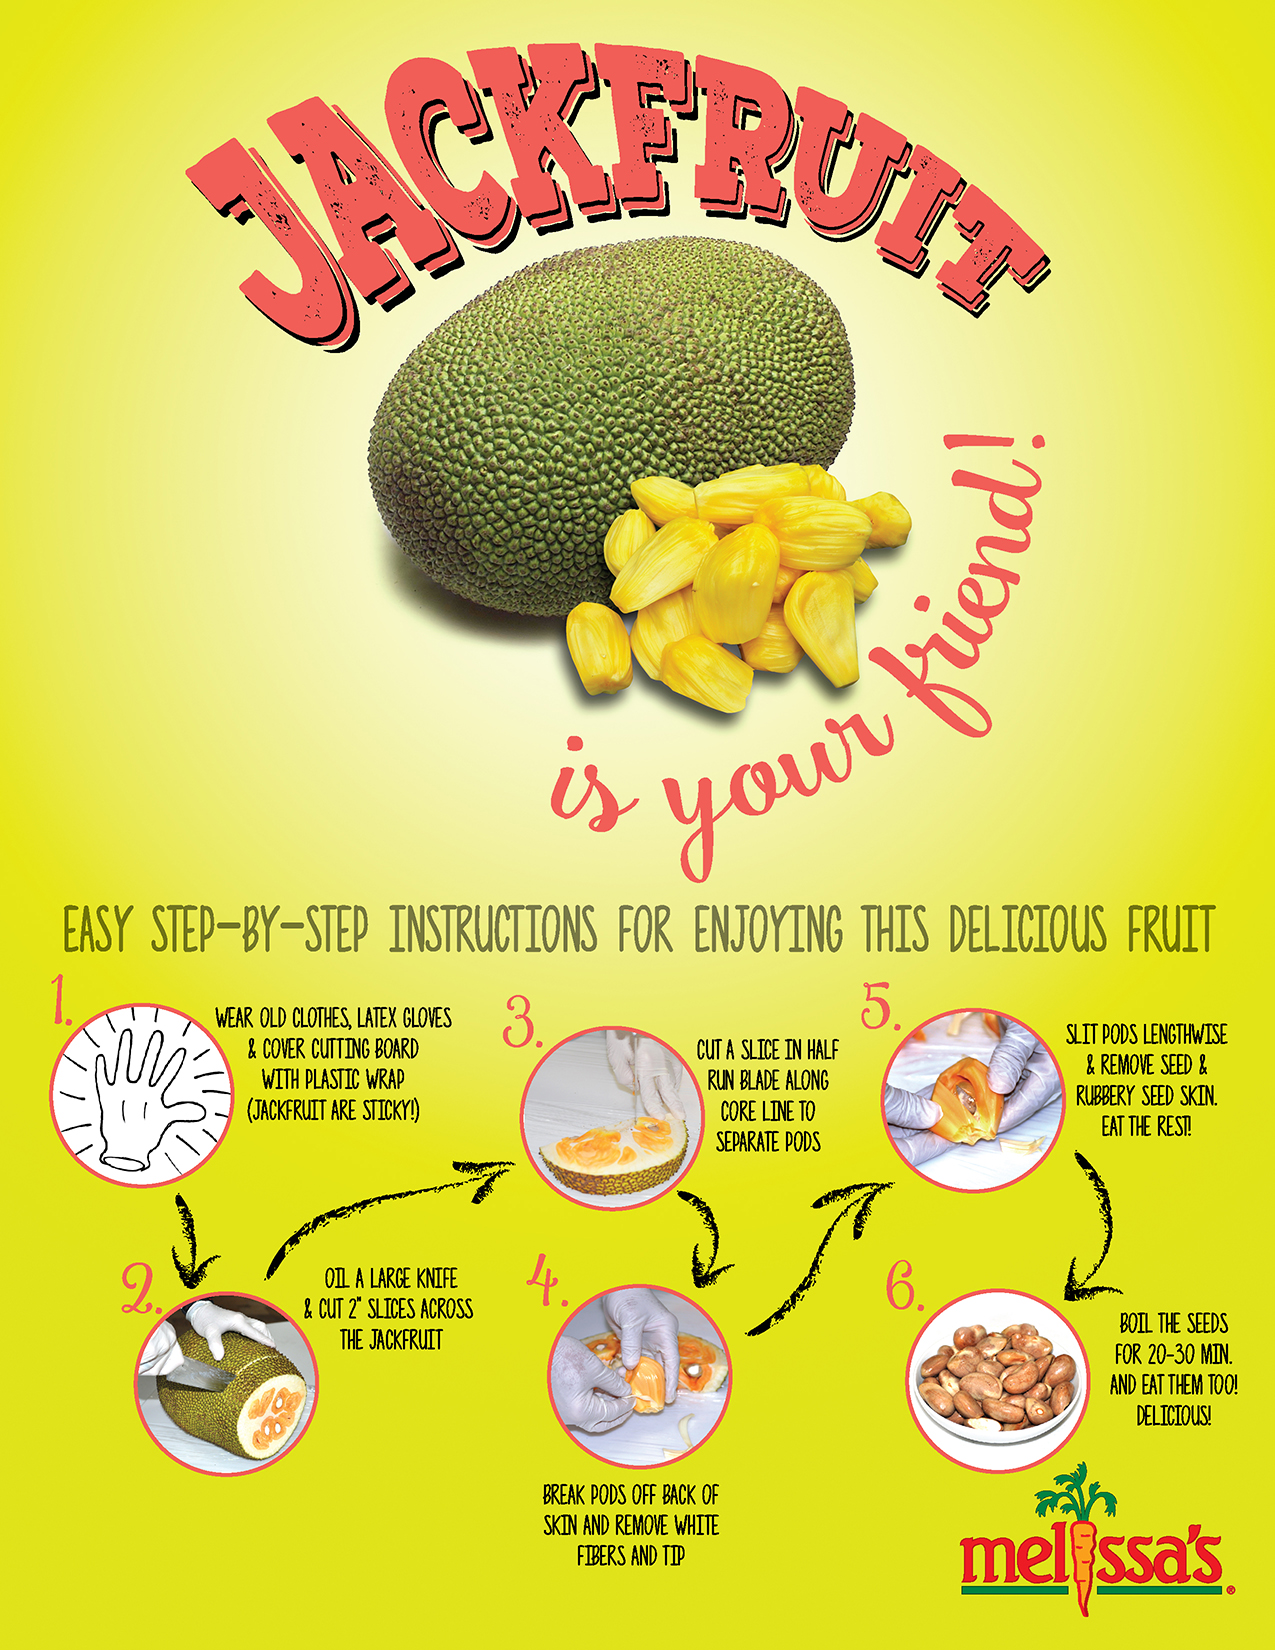 Pin by Kelley J on Vegan yummies in 2019 | Jackfruit recipes